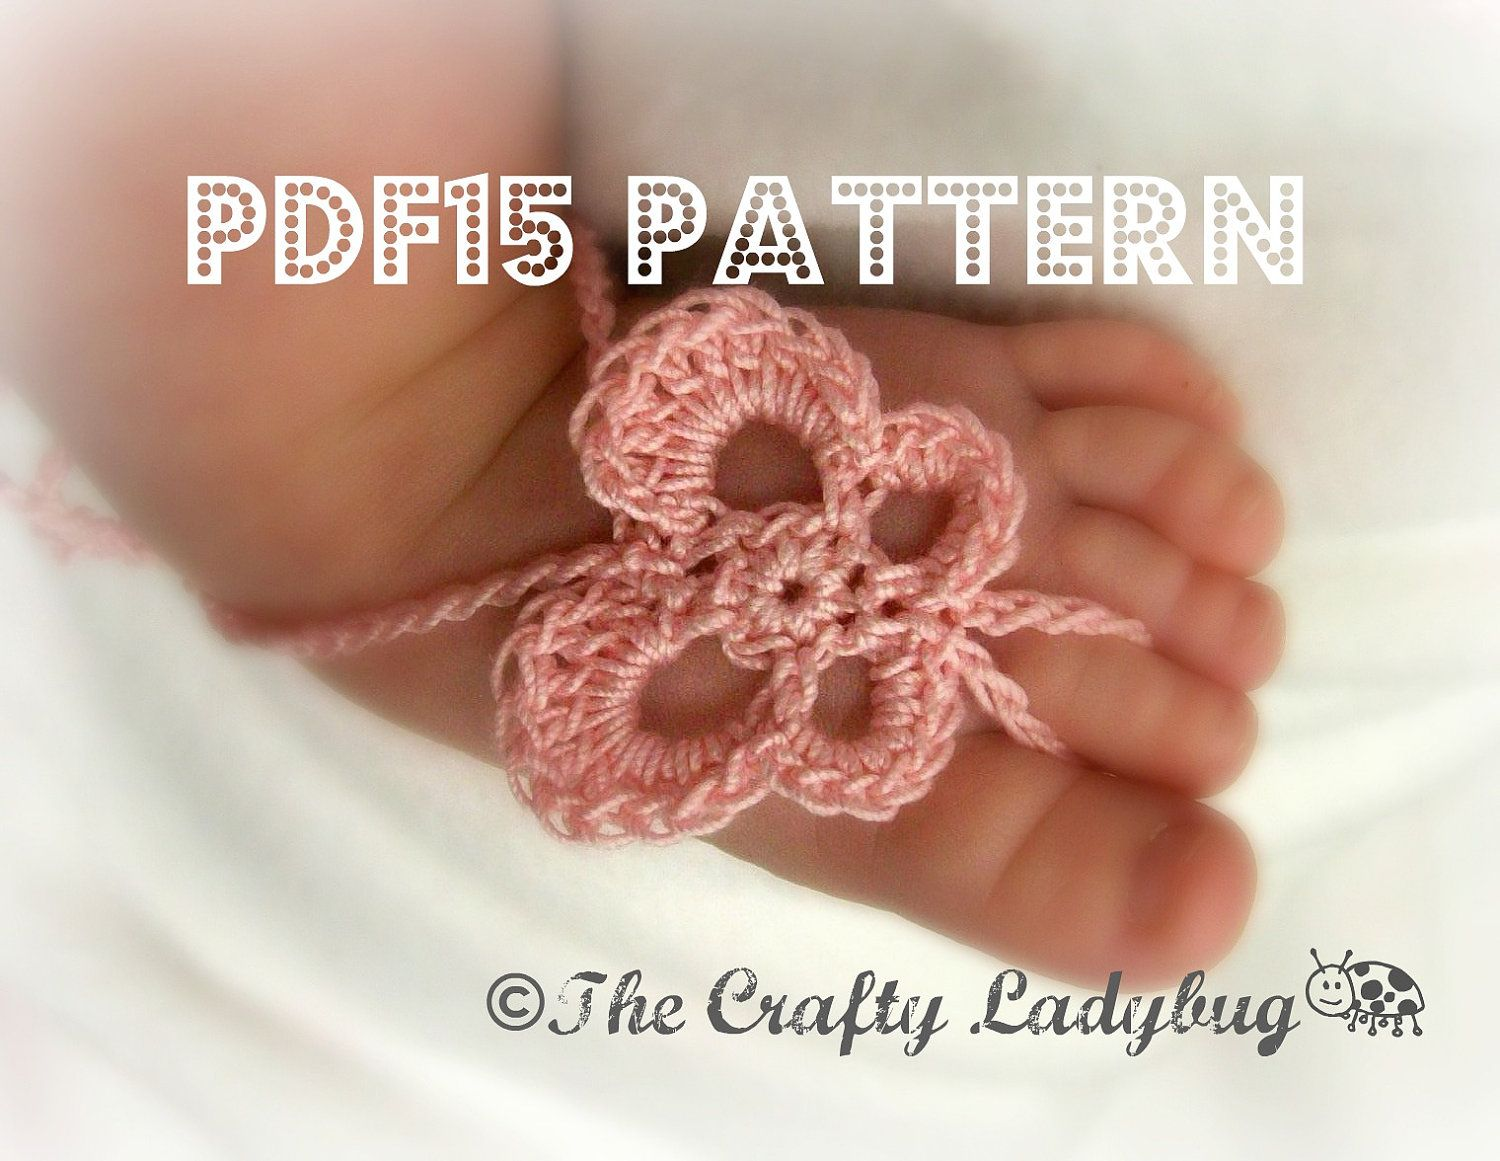 Butterfly barefoot baby sandals crochet pattern for newborn to butterfly barefoot baby sandals crochet pattern for newborn to toddler sizes pdf15 bankloansurffo Image collections